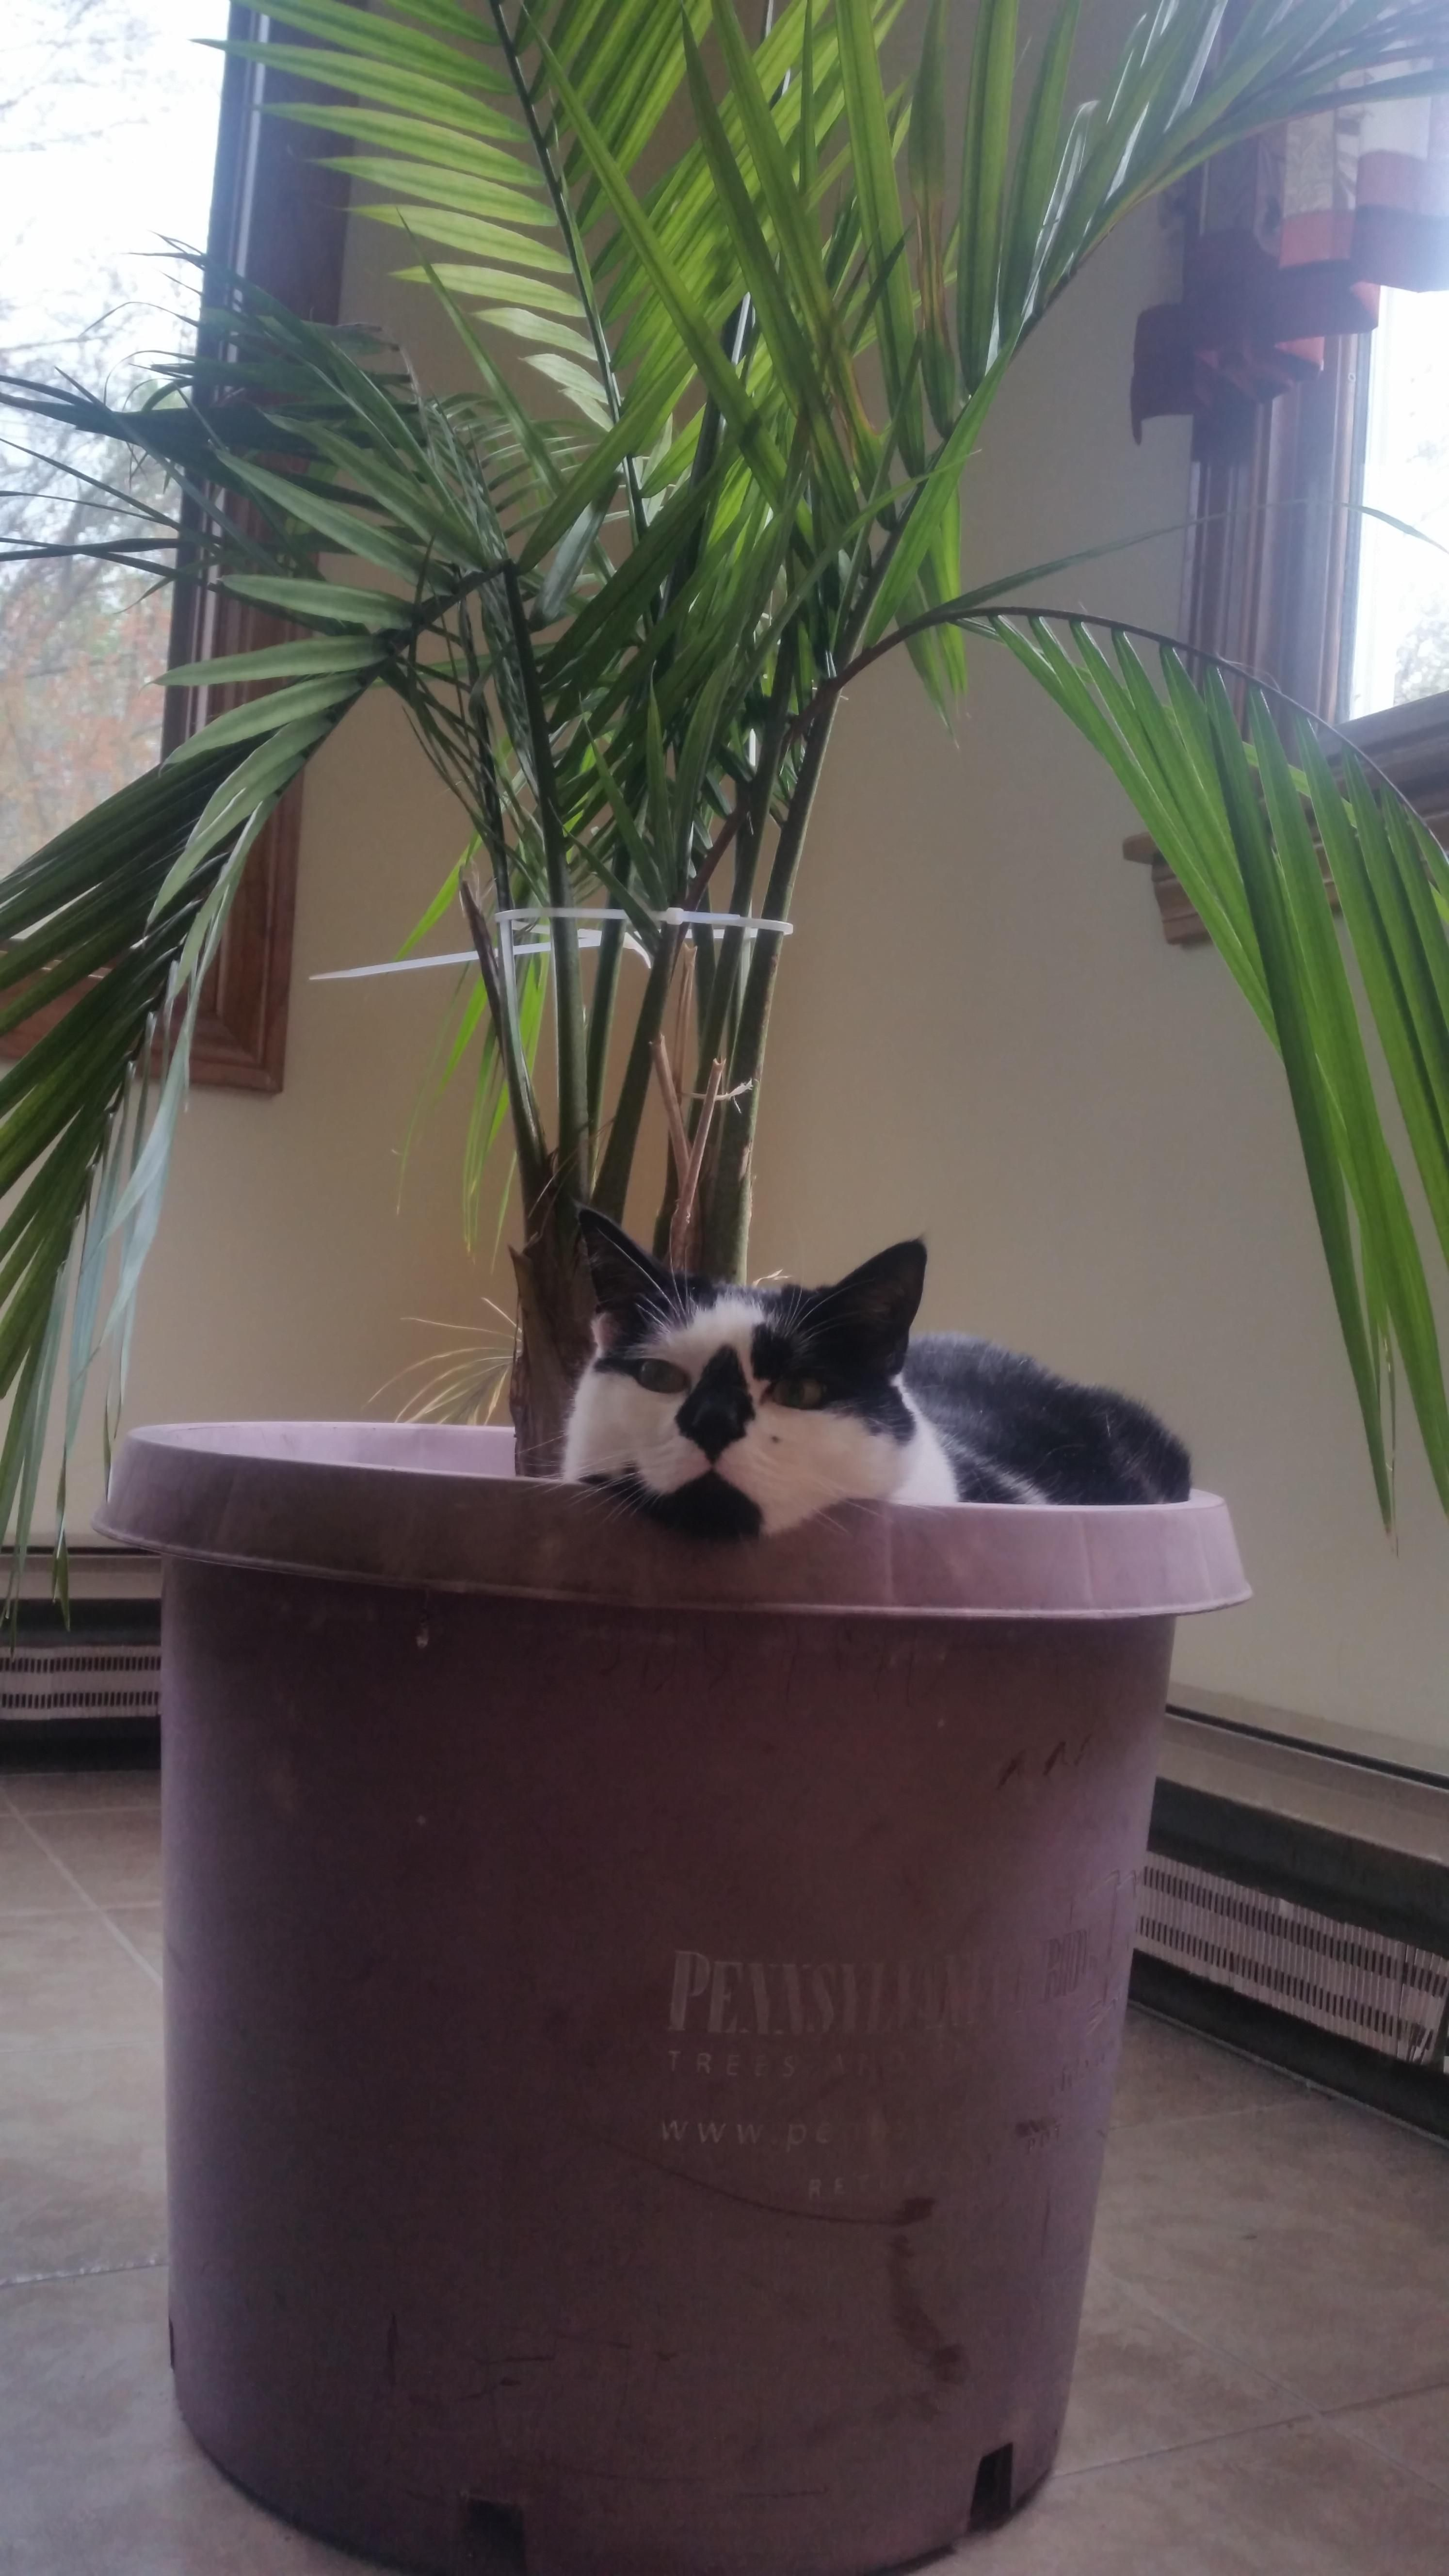 My cat does this to all my plants http://ift.tt/2pnPseX